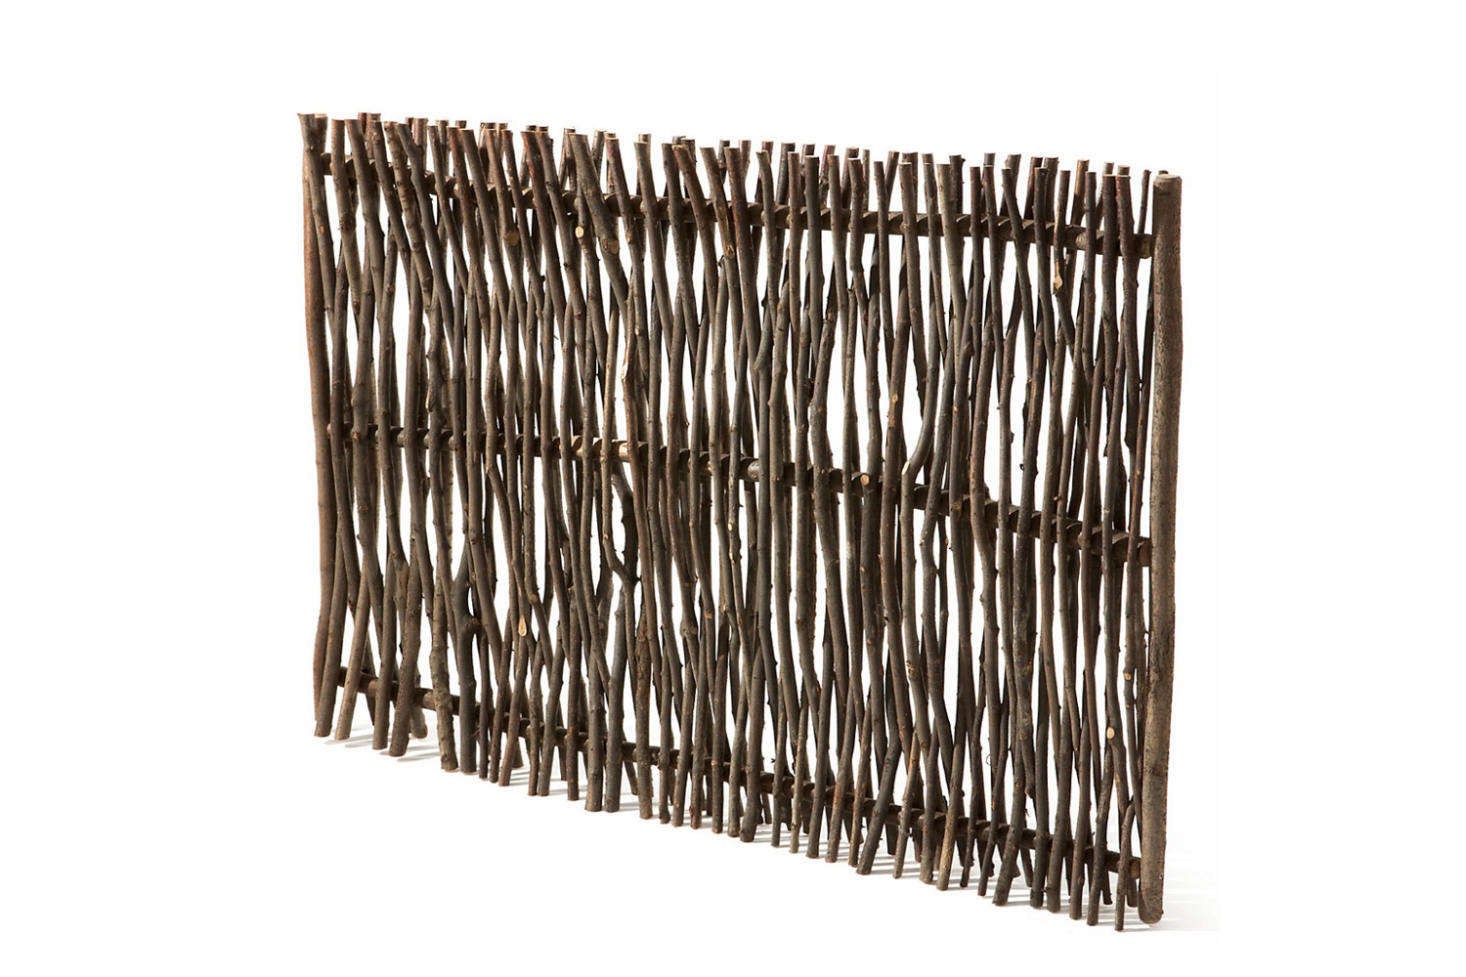 The rustic Privacy Screen Made of Hazel Switches is €167 at Manufactum.